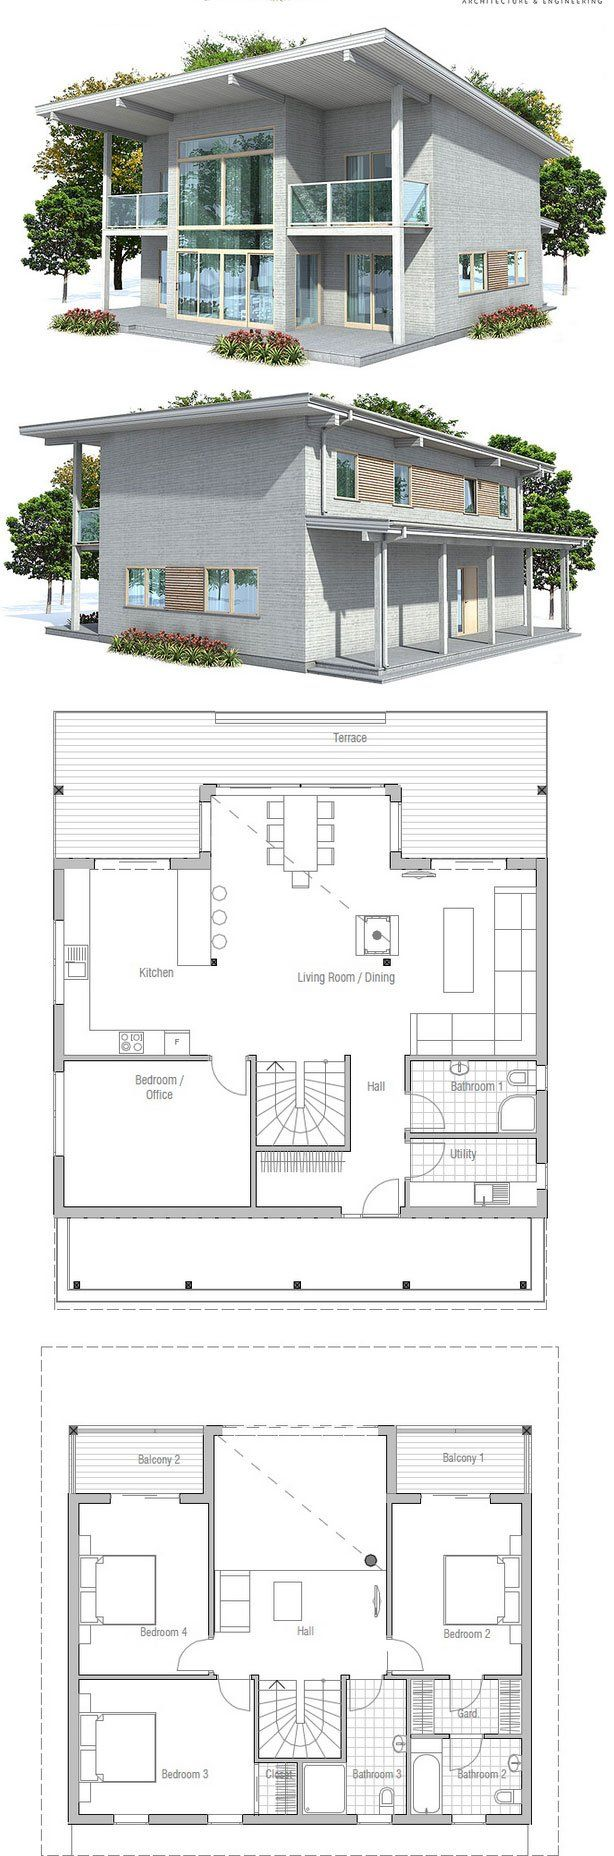 25 best ideas about small modern house plans on pinterest small modern home modern house plans and modern house floor plans